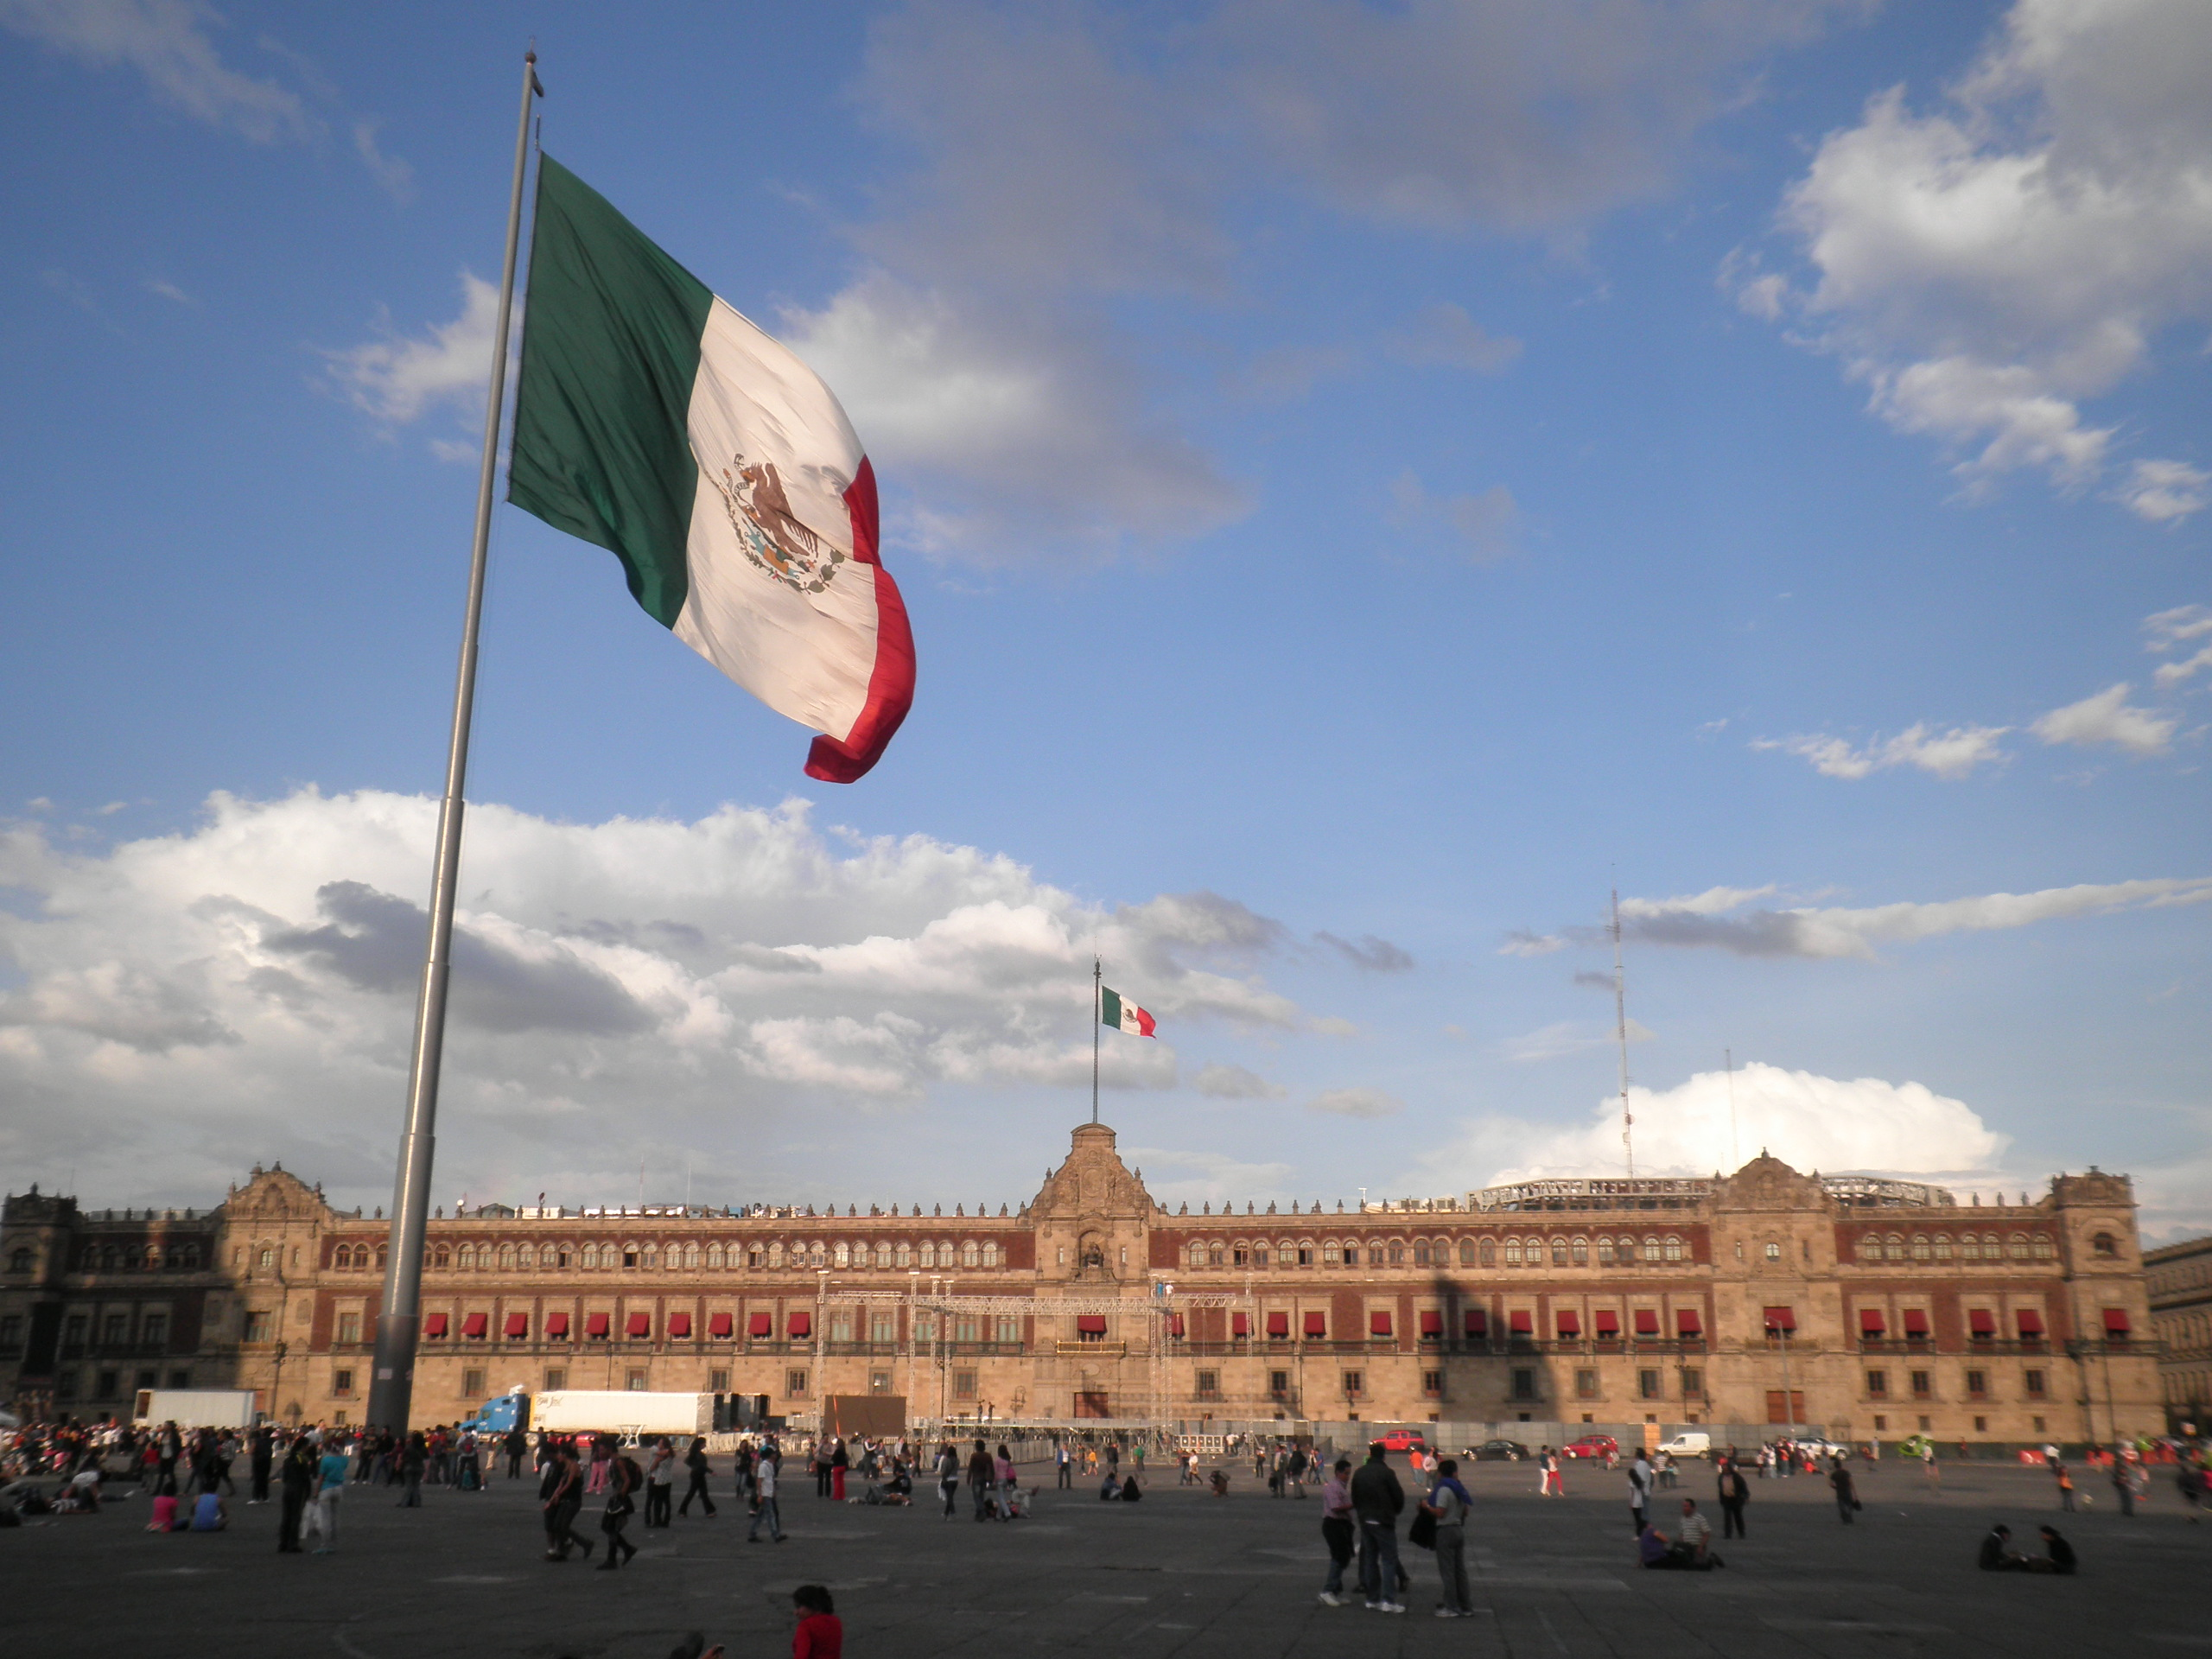 Violent Elections in Mexico: Why do they Matter?